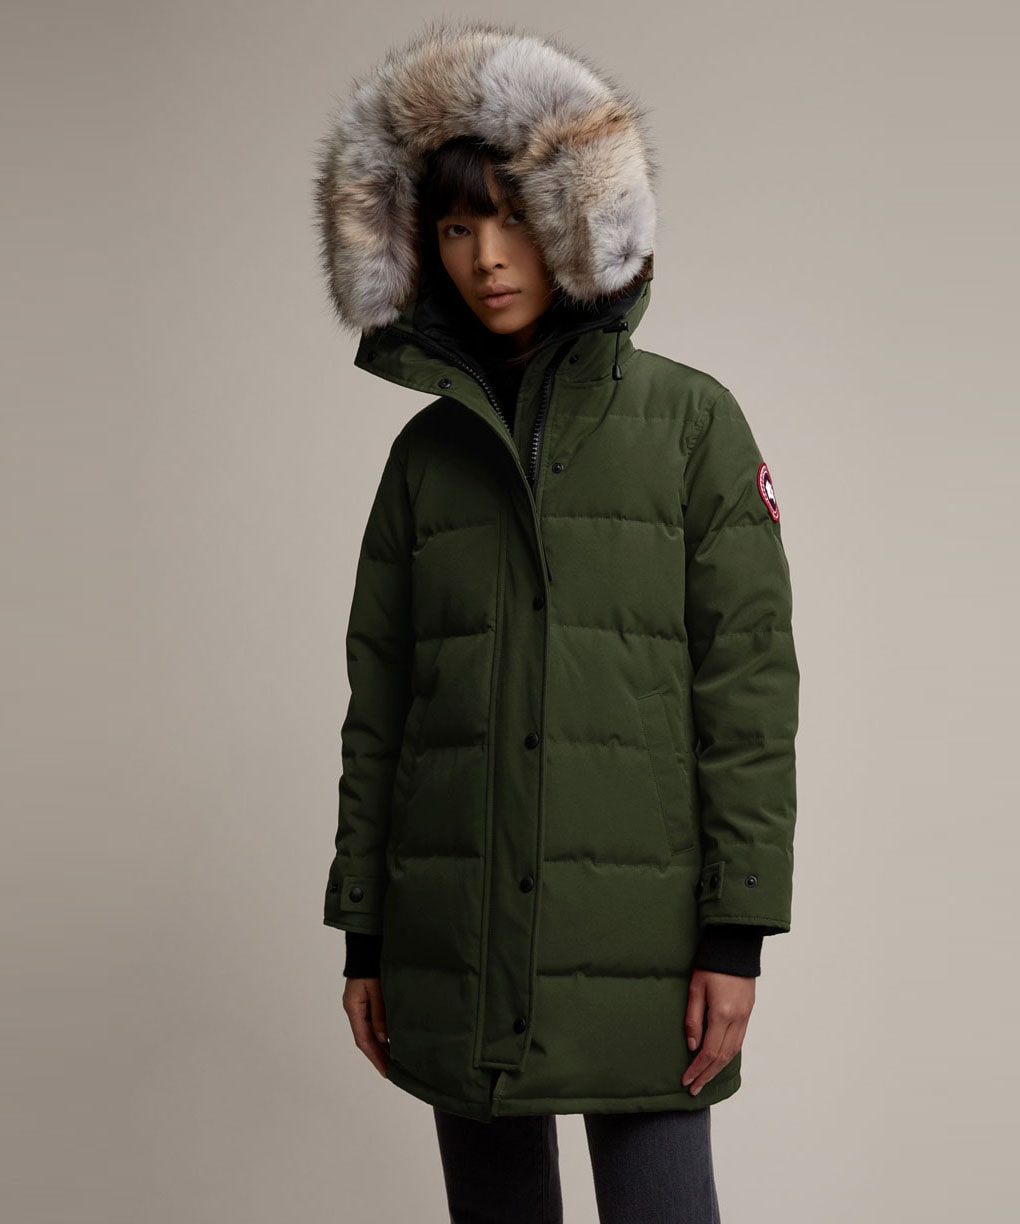 https://www.canadagoose.jp/shop/canadagoose/SHELBURNE+PARKA+FUSION+FIT/item/view/shop_product_id/782